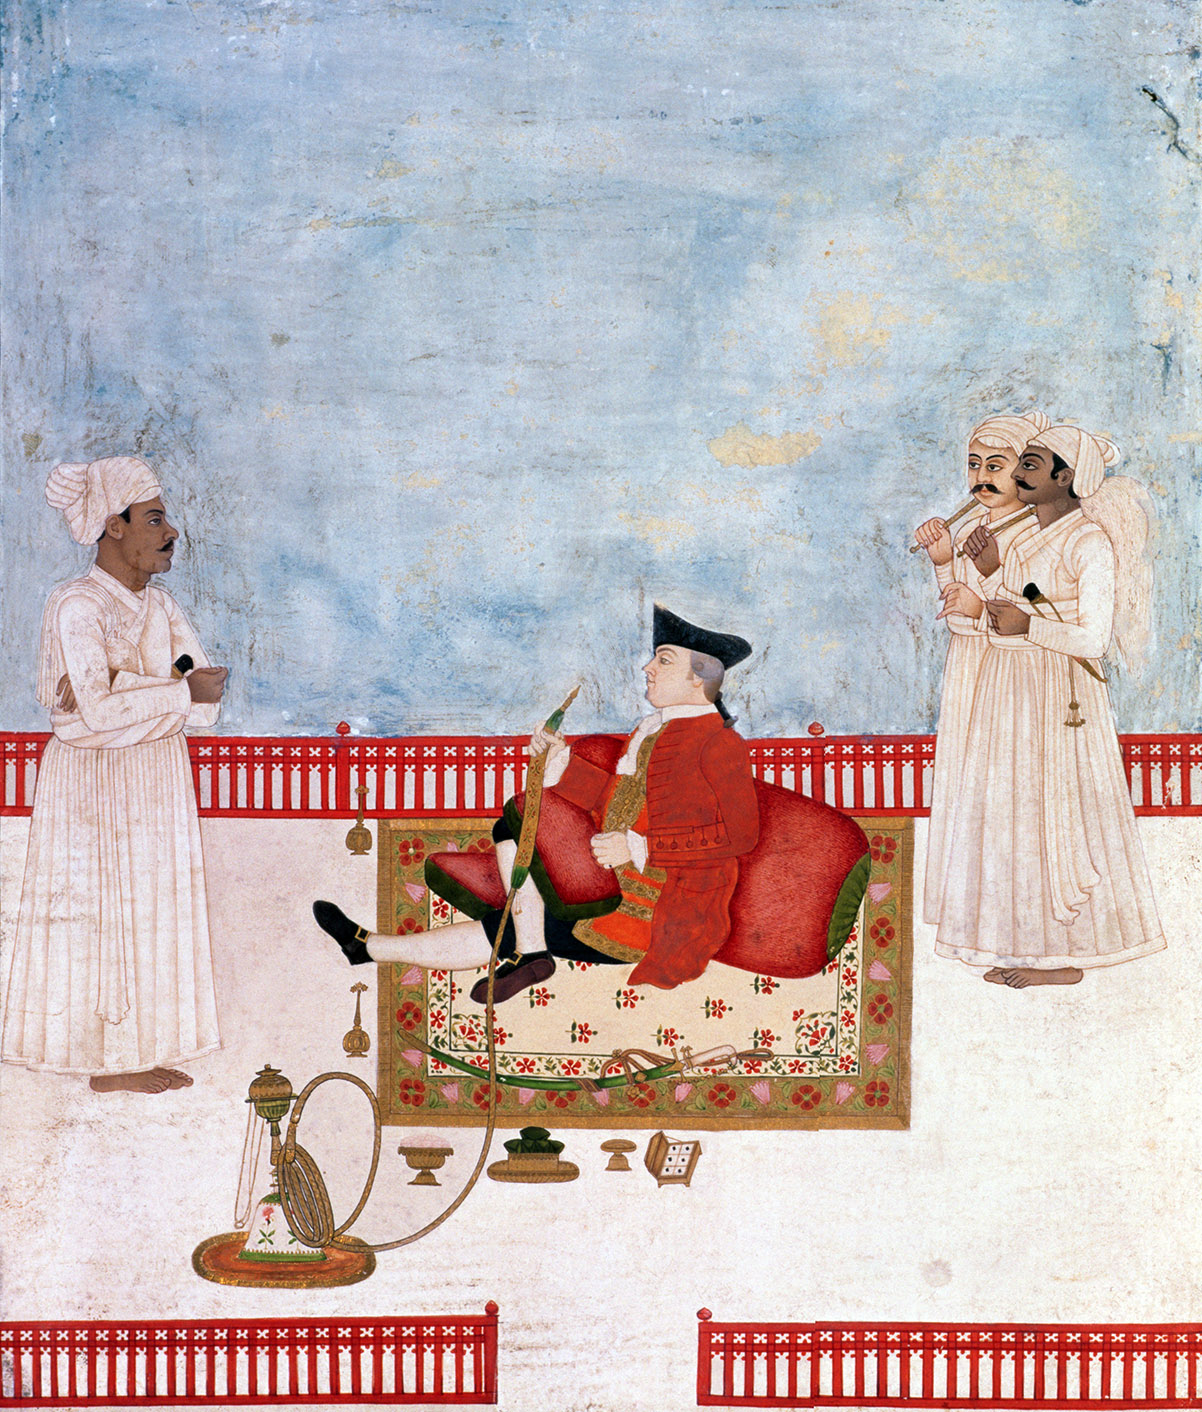 East India Company official with attendants in waiting, by Dip Chand, 1763.